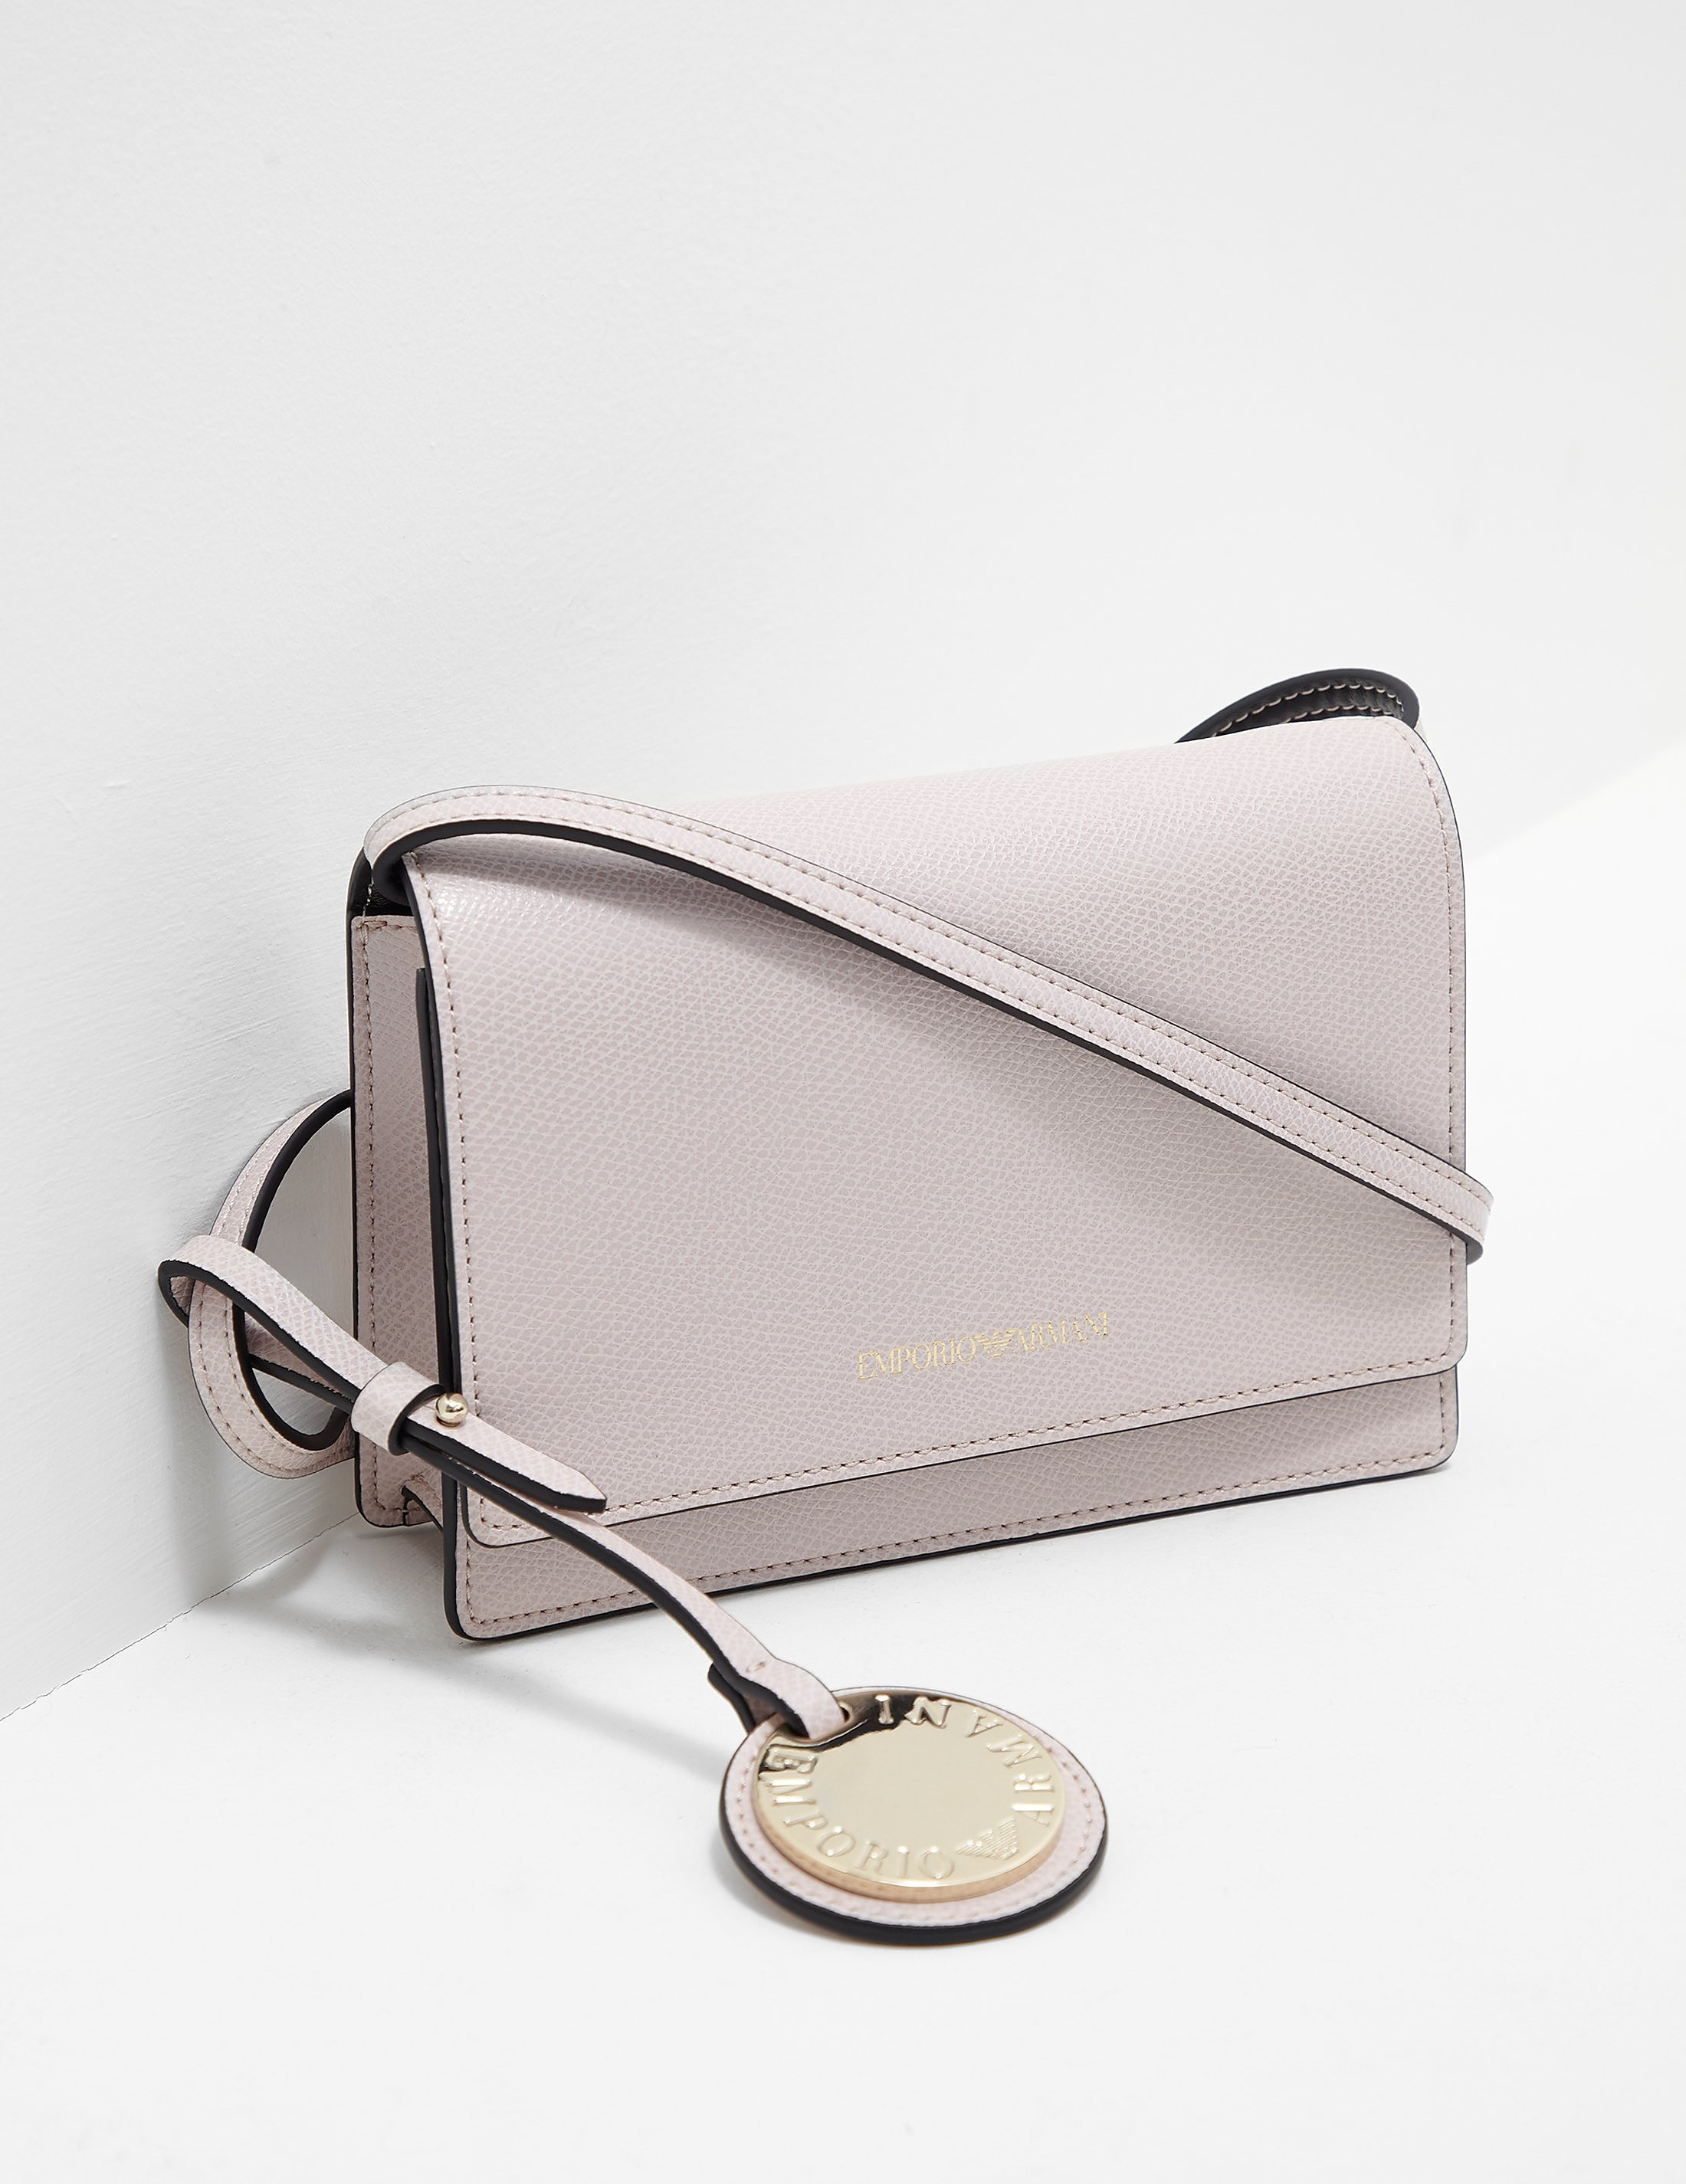 Emporio Armani Borsa Crossbody Bag - Online Exclusive